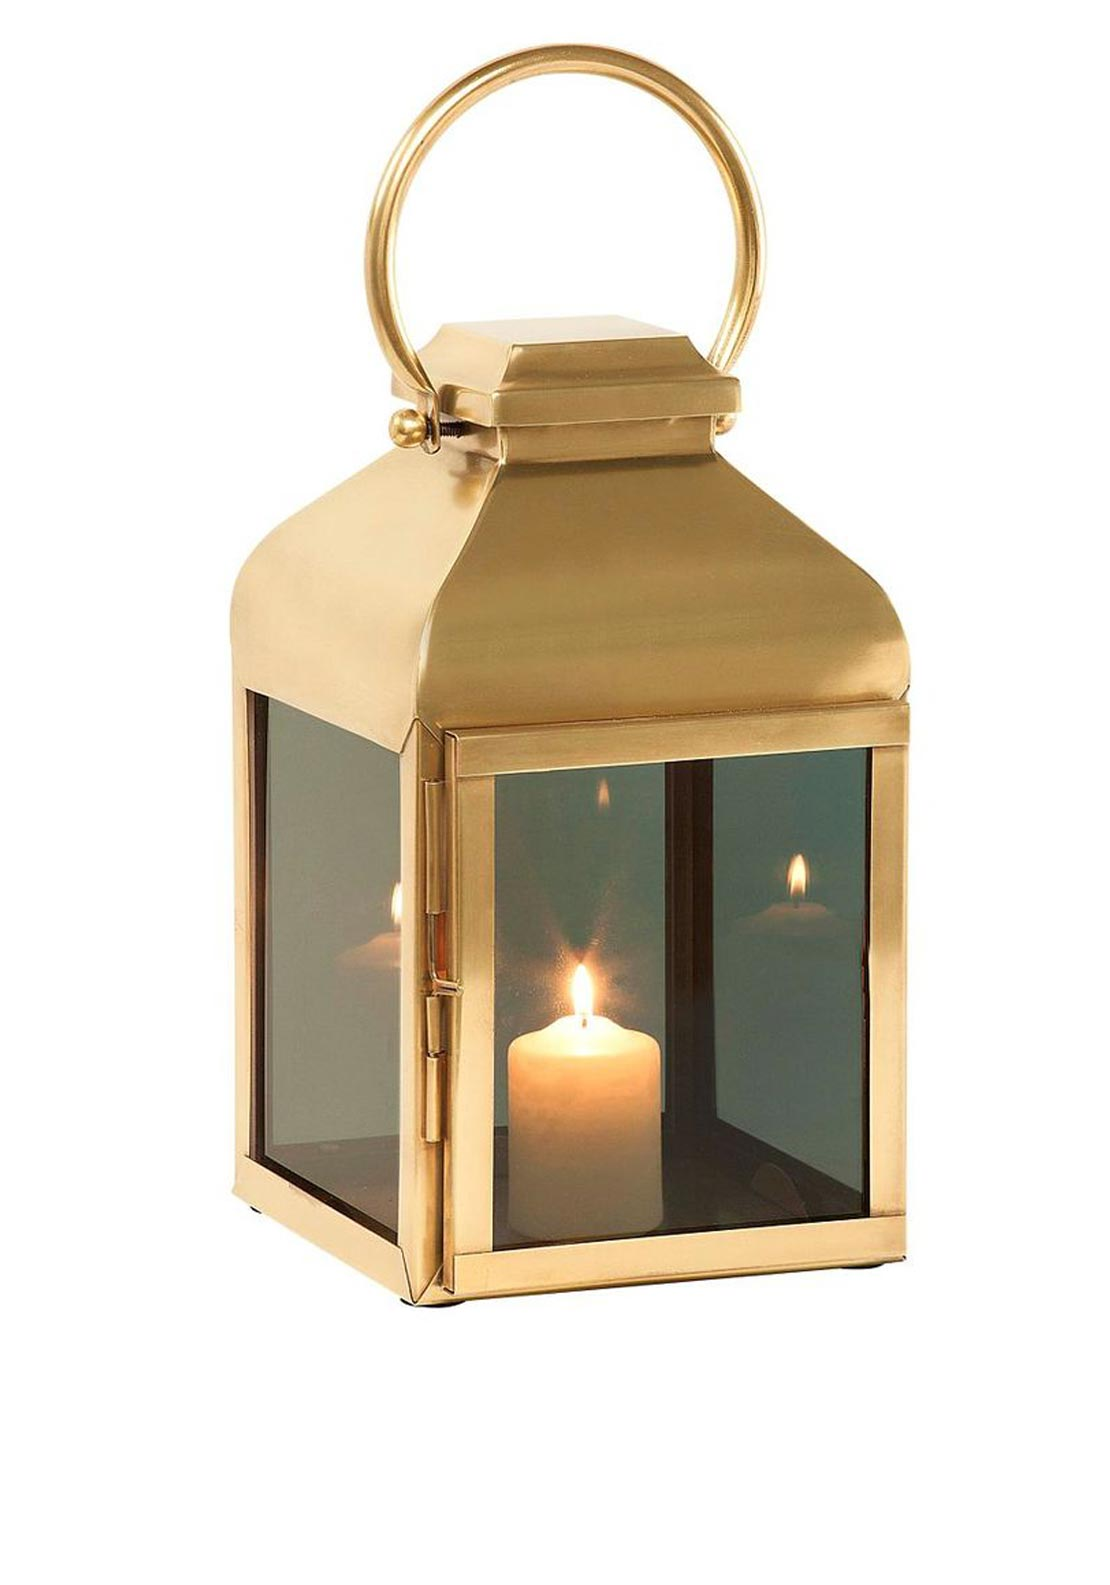 Mindy Brownes Small Ash Lantern with Hoop Handle, 16 inches